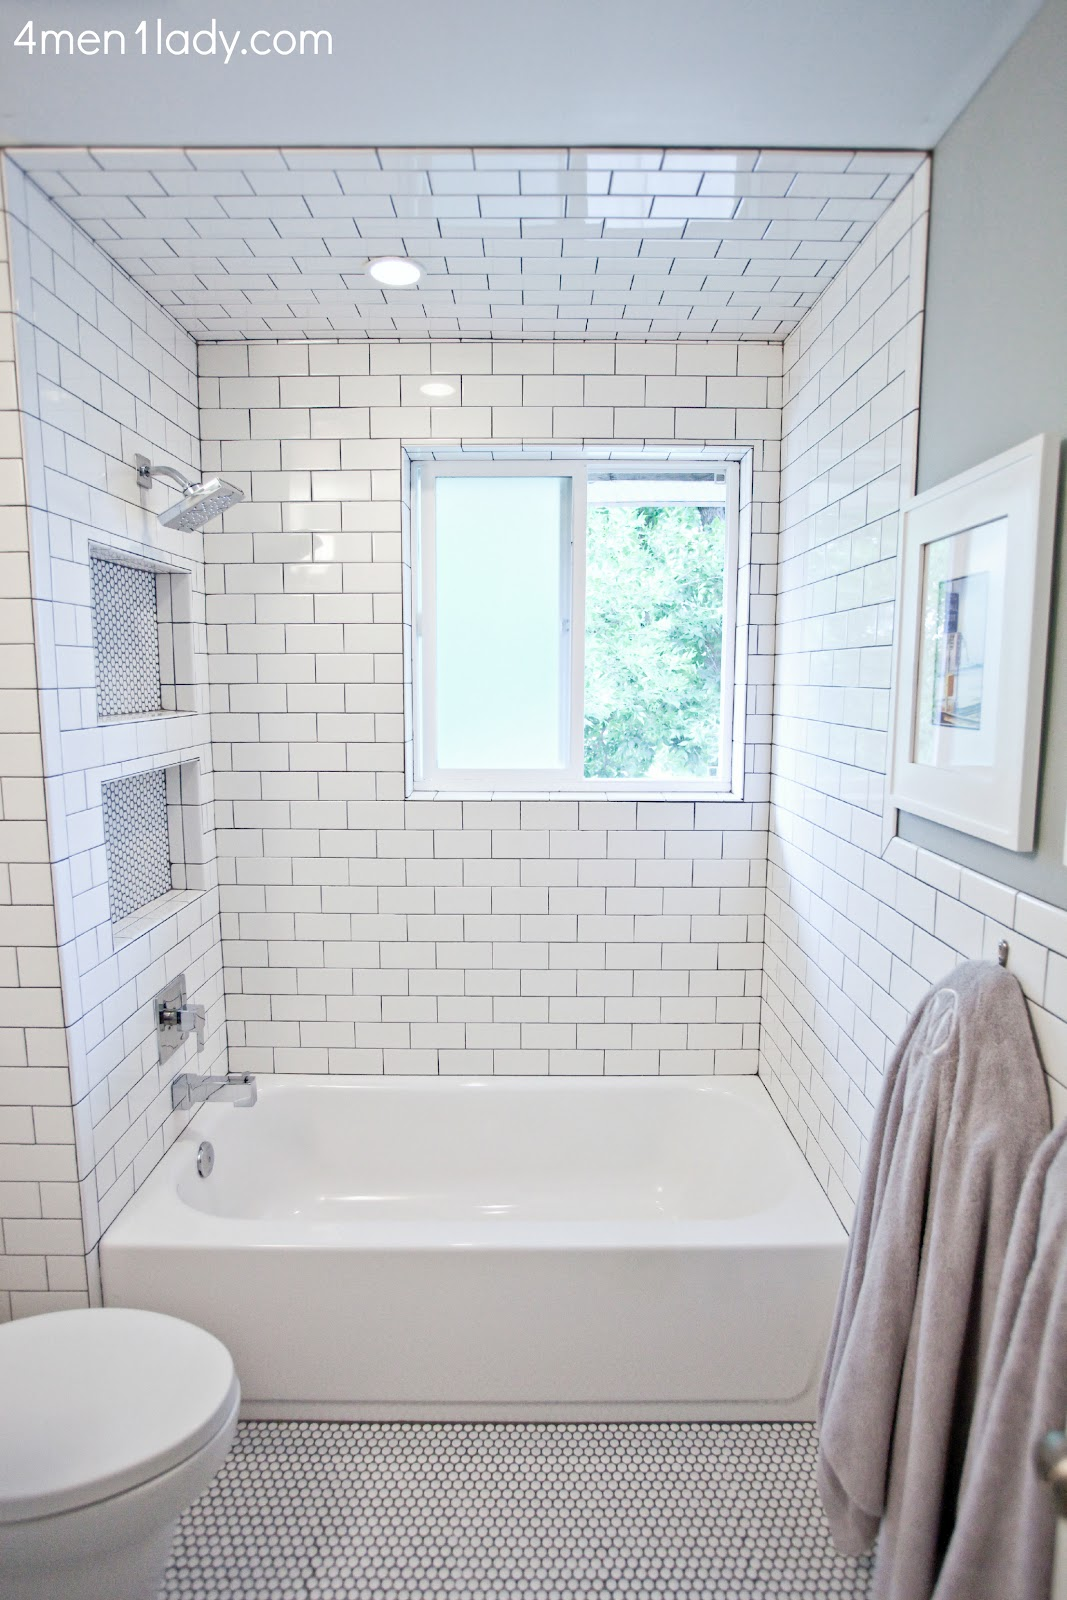 Bathroom Tiles Without Grout With Excellent Styles In Canada ...